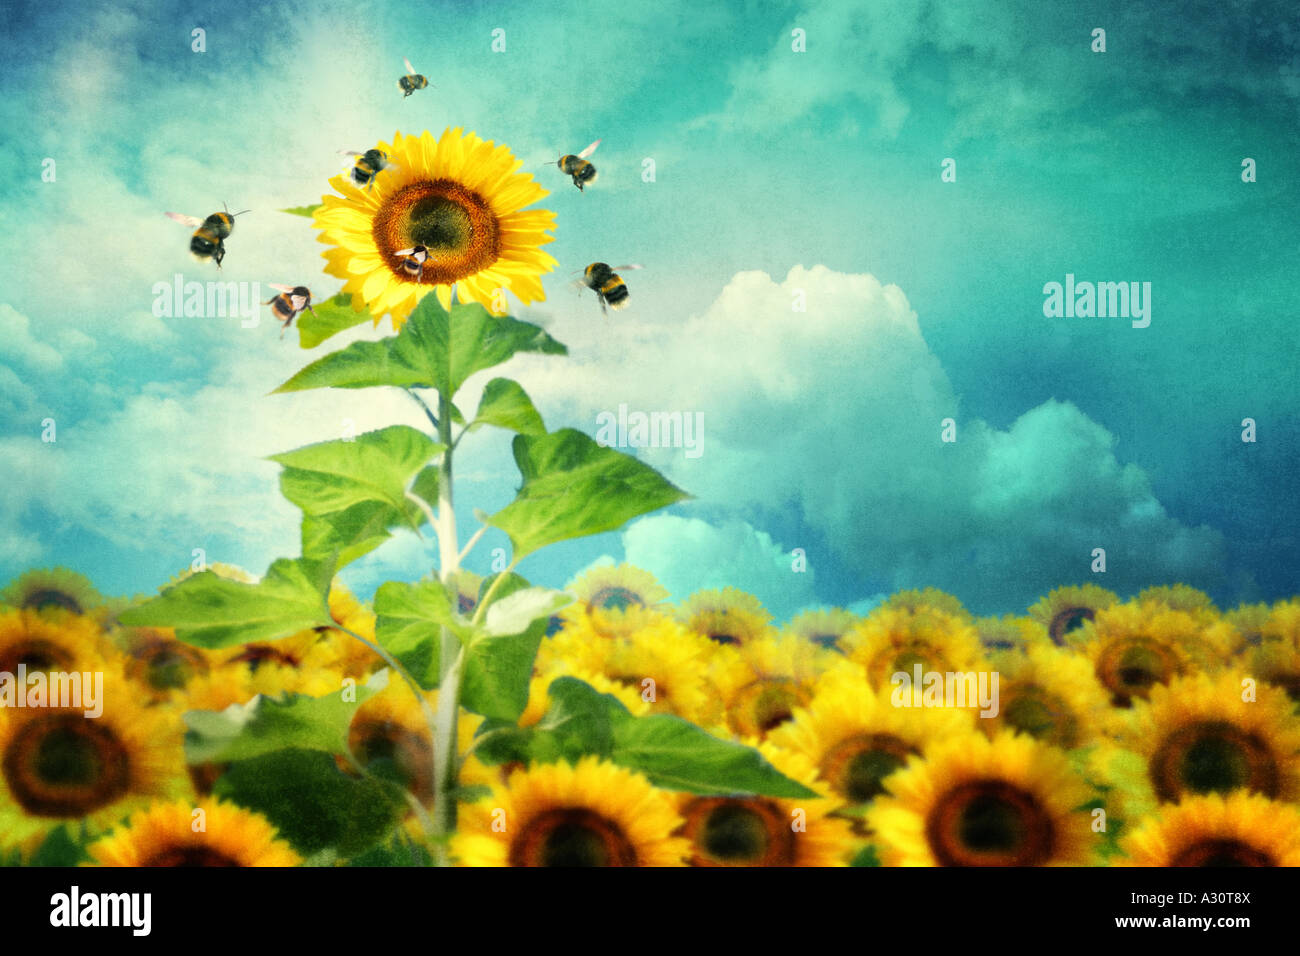 Image d'un concept de haut standing out tournesol et attirer davantage d'abeilles Photo Stock